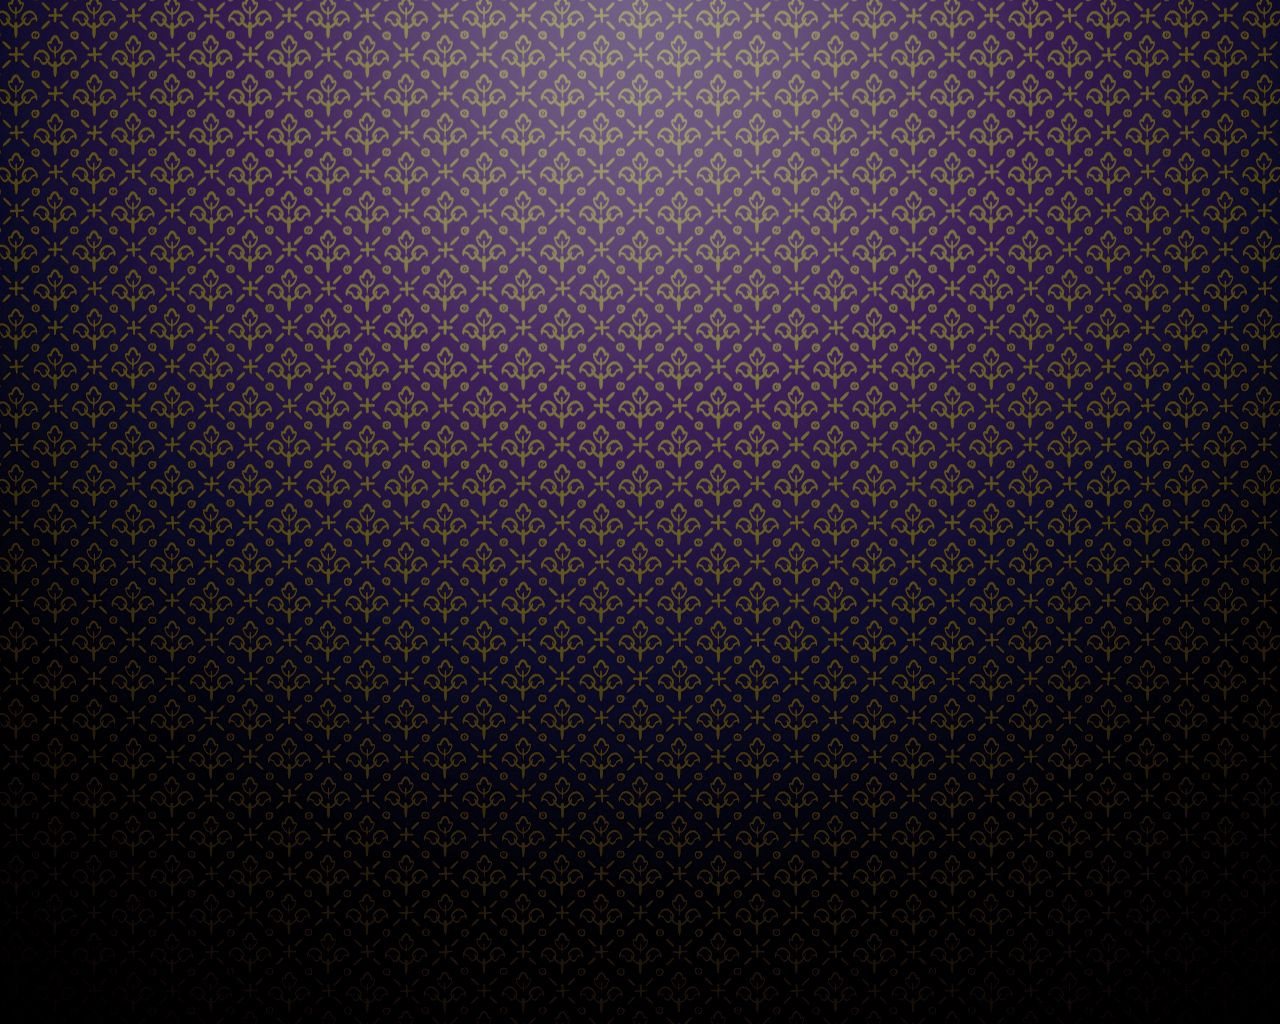 120979 download wallpaper Textures, Texture, Purple, Violet, Dark, Shadow, Patterns screensavers and pictures for free